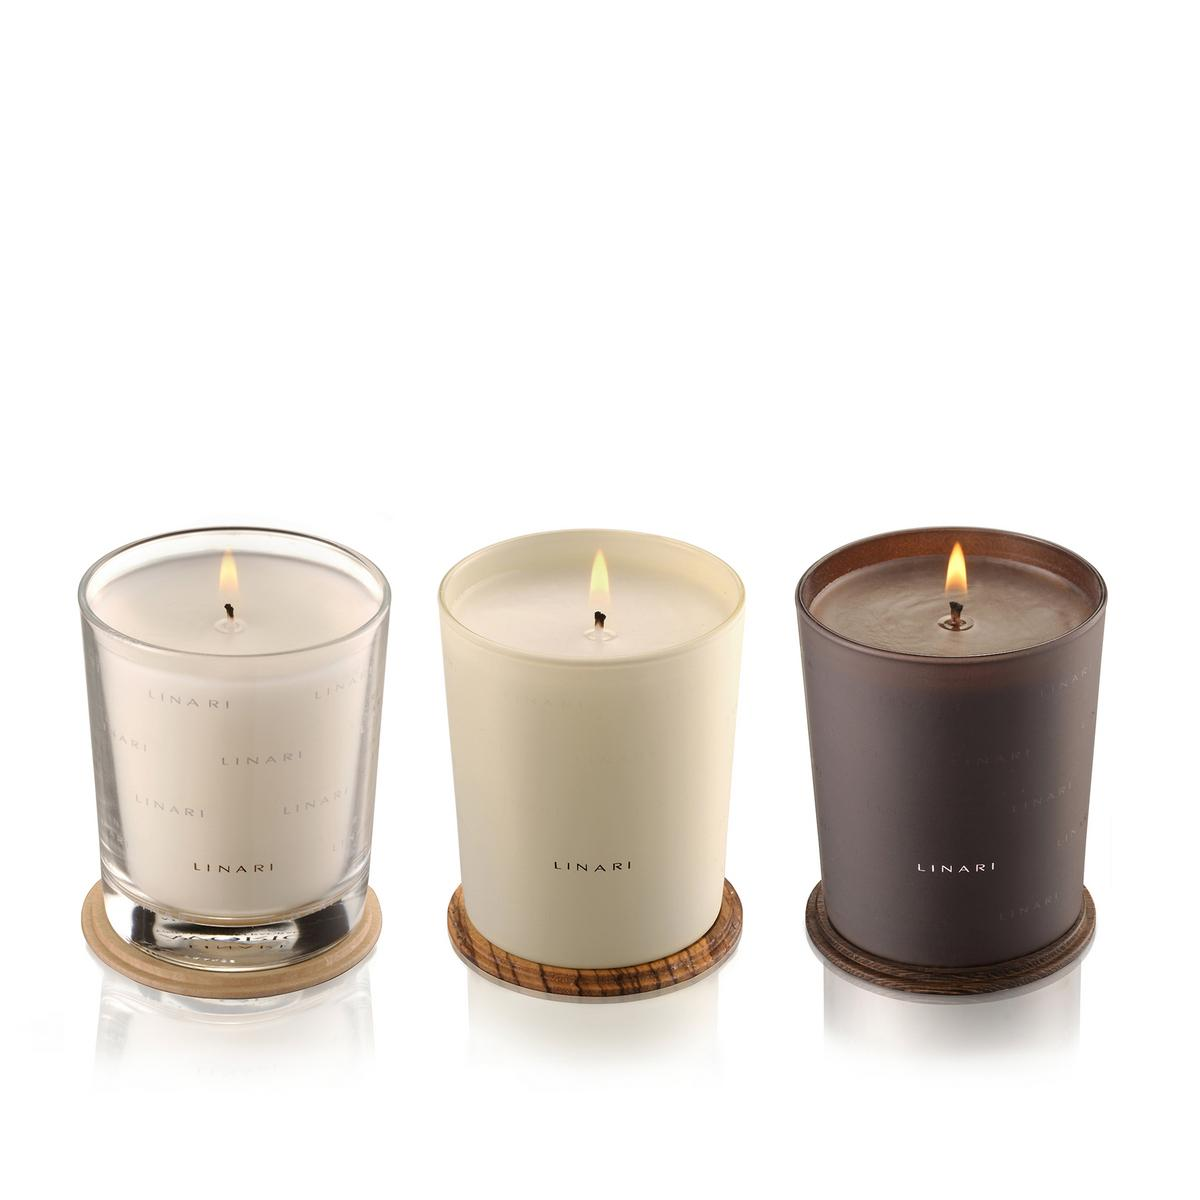 Linari scented candles for Best scented candle brands